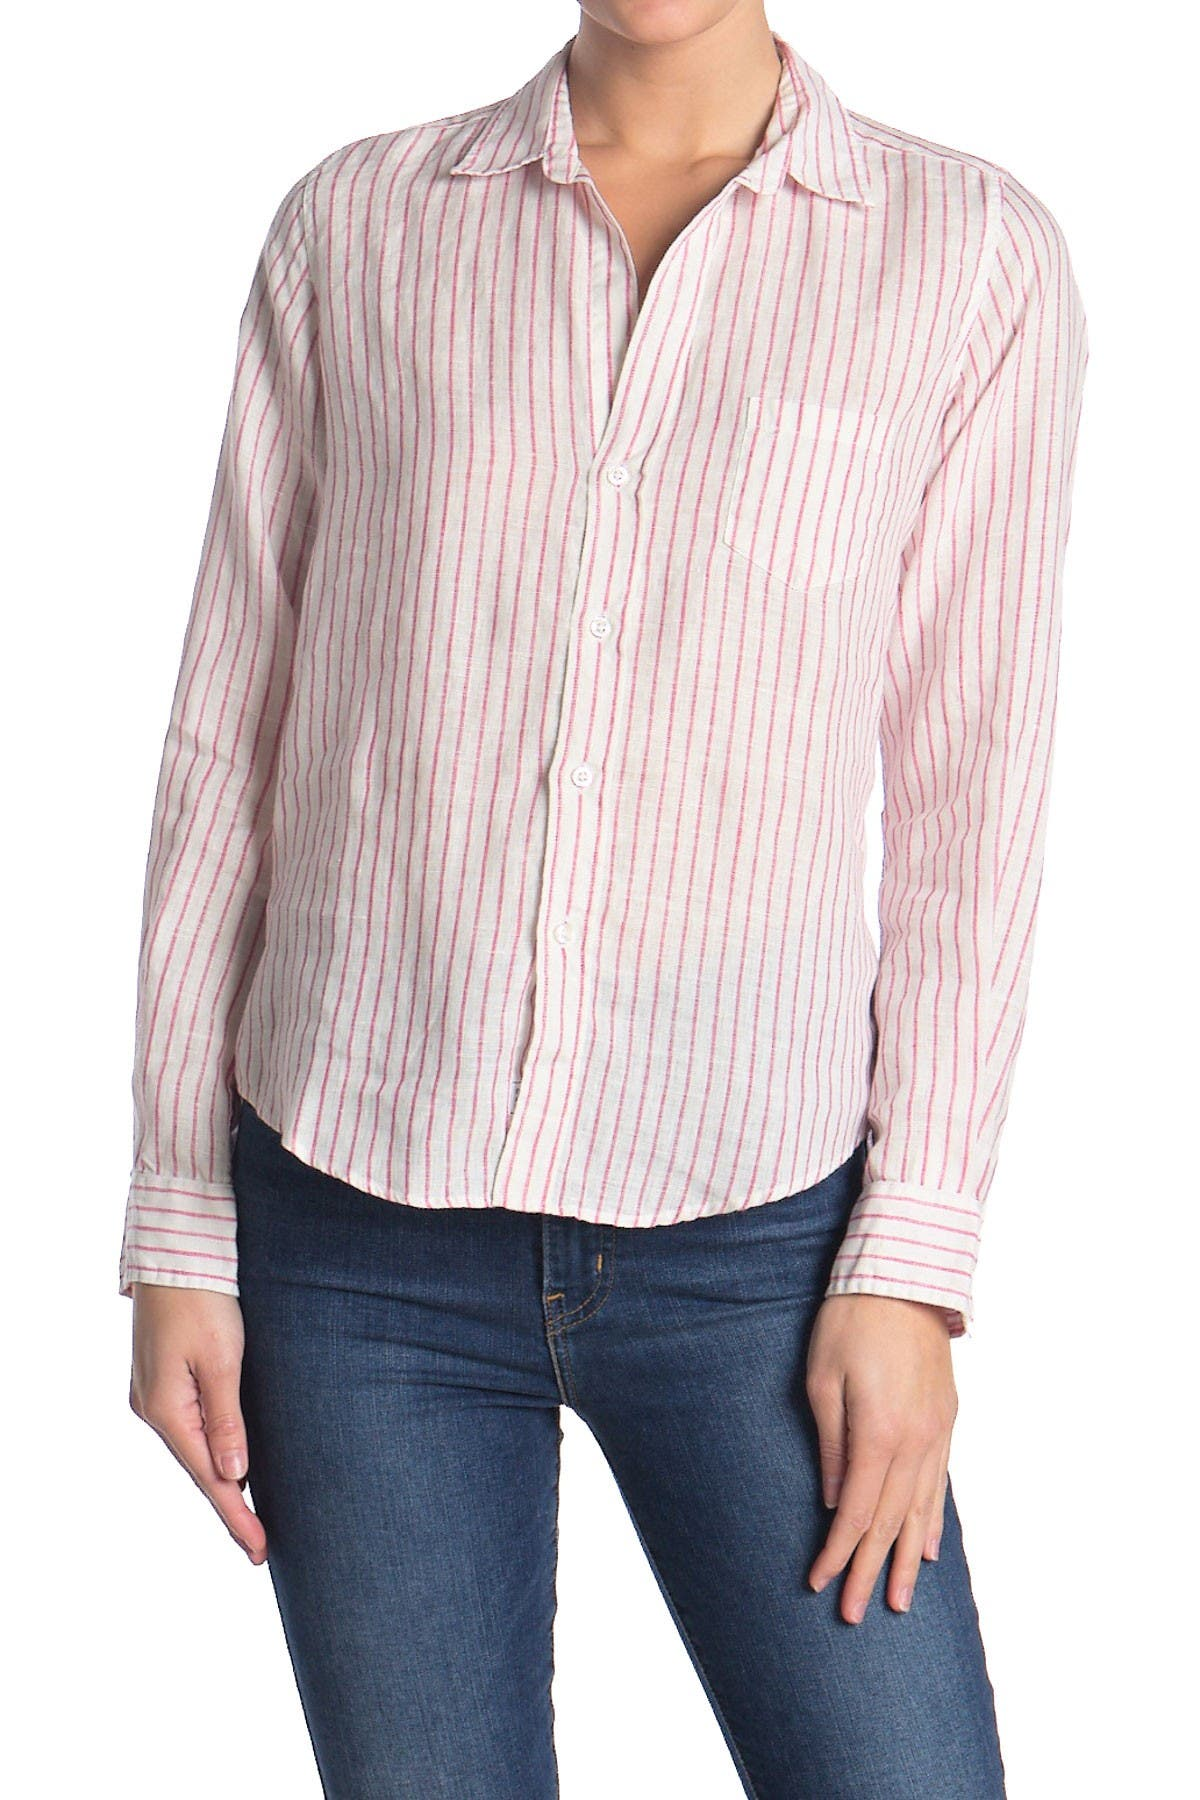 Image of FRANK & EILEEN Barry Striped Classic Tailored Fit Shirt